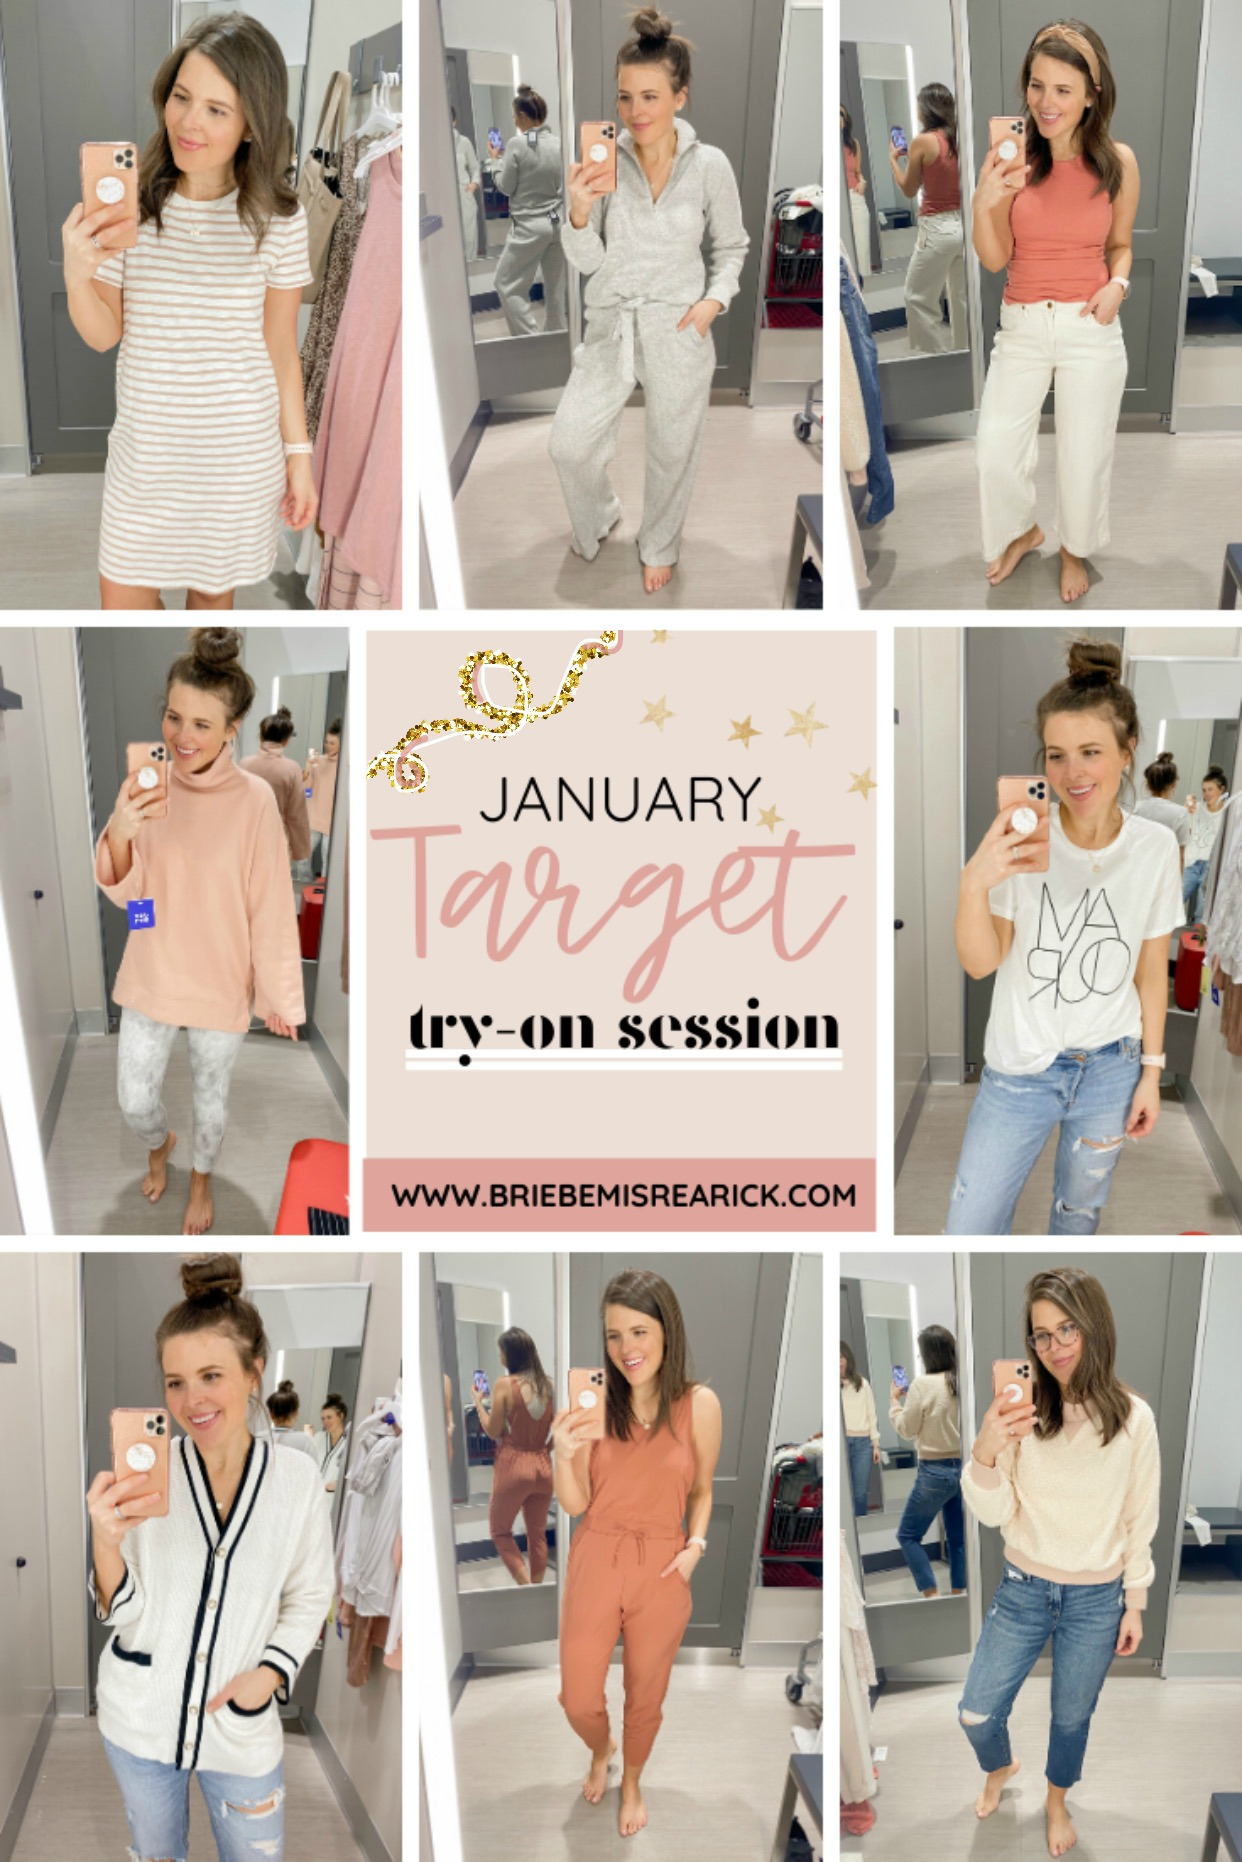 January Target Try-On Session